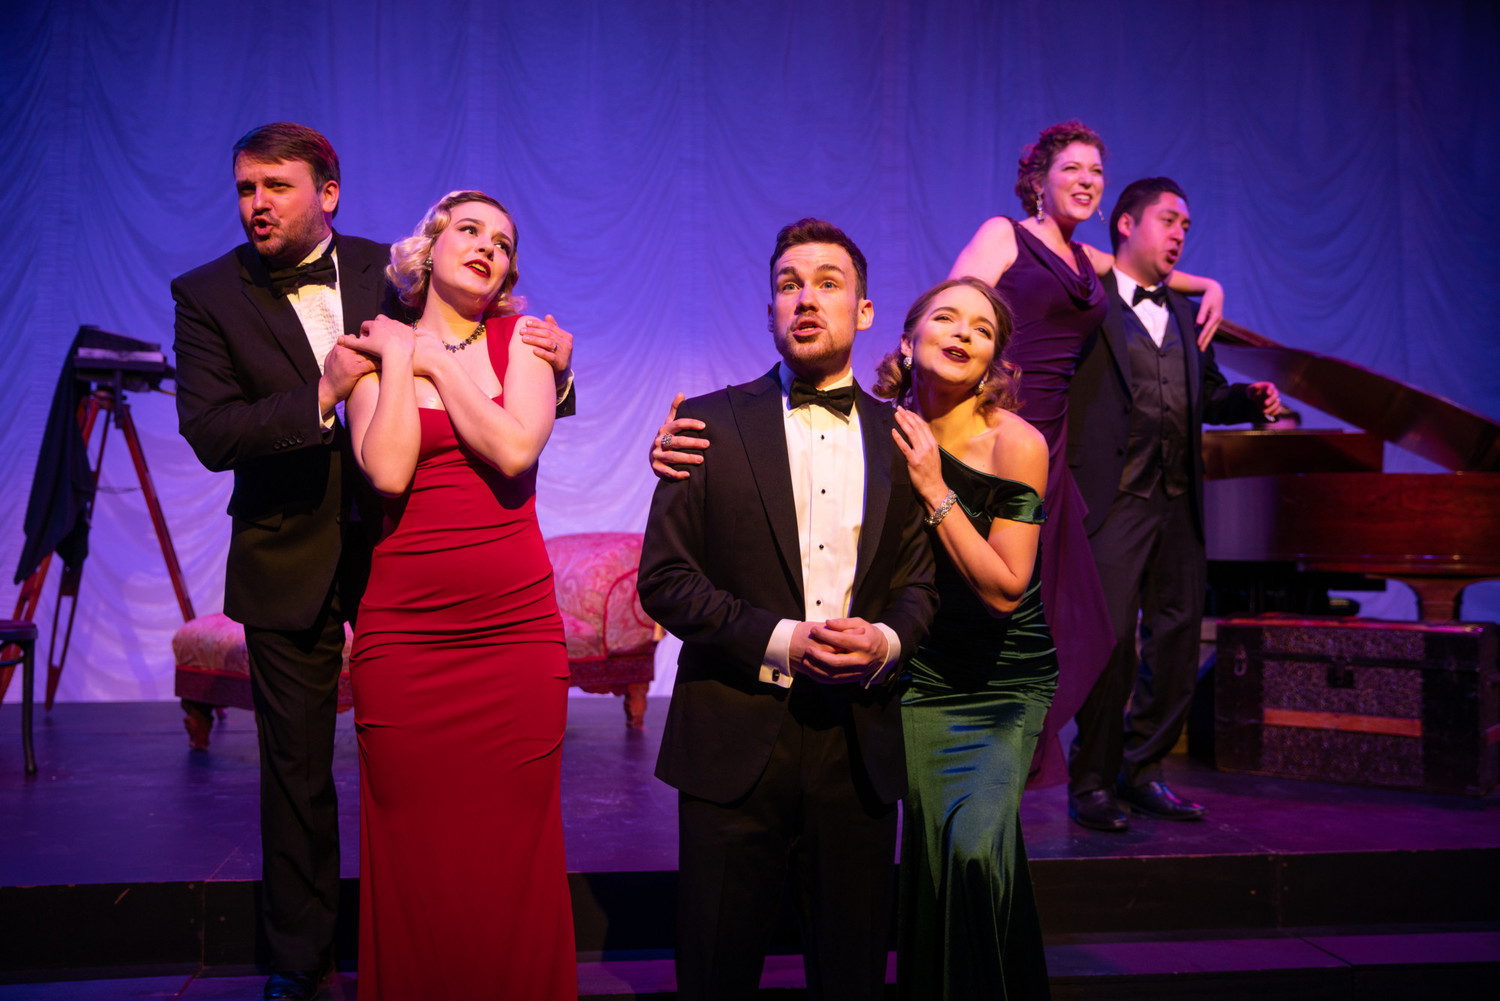 BWW Review: MACK THE KNIFE IS THE MAN I LOVE at KC Lyric Opera